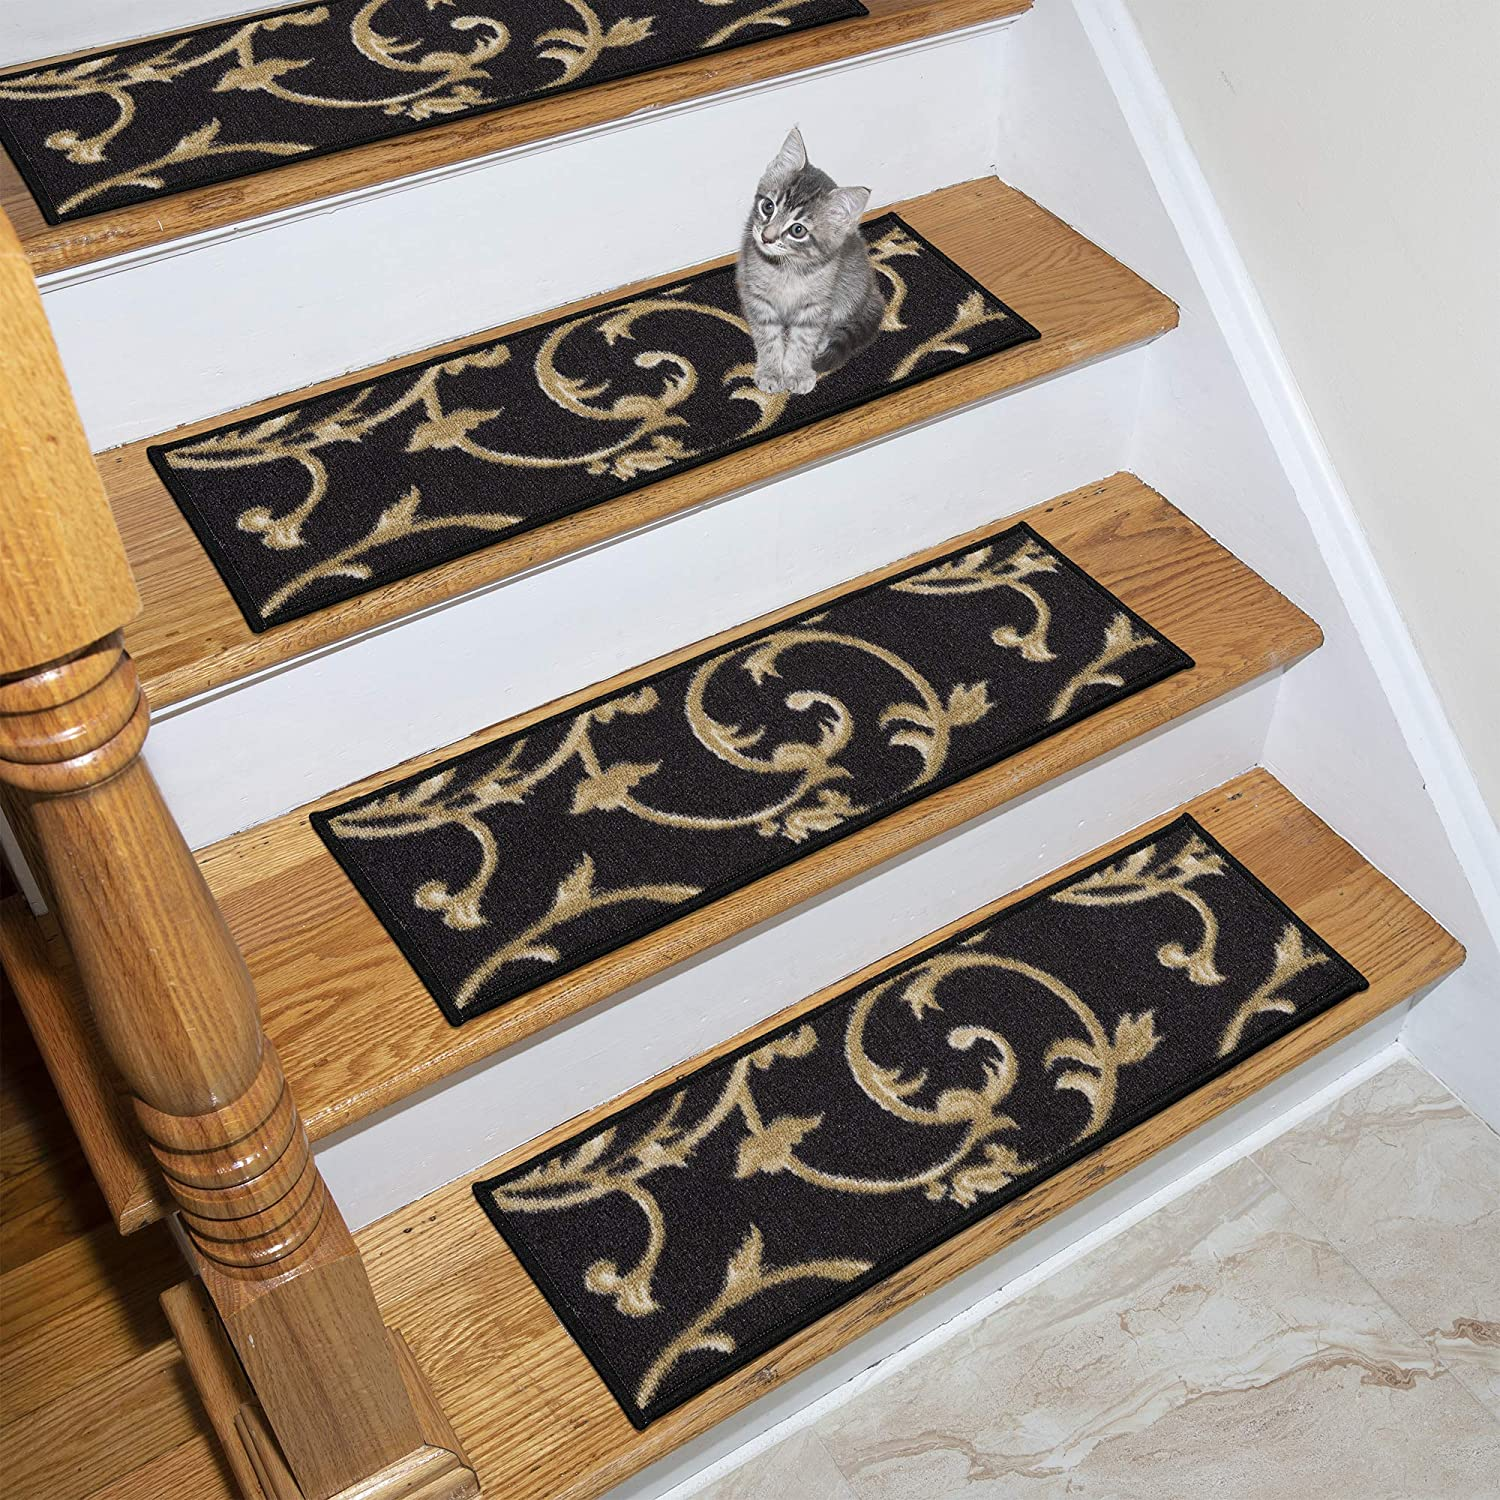 Ottomanson Ottohome Collection Stair Tread, 8.5 X 26 Pack of 7, Black OTH3043-7